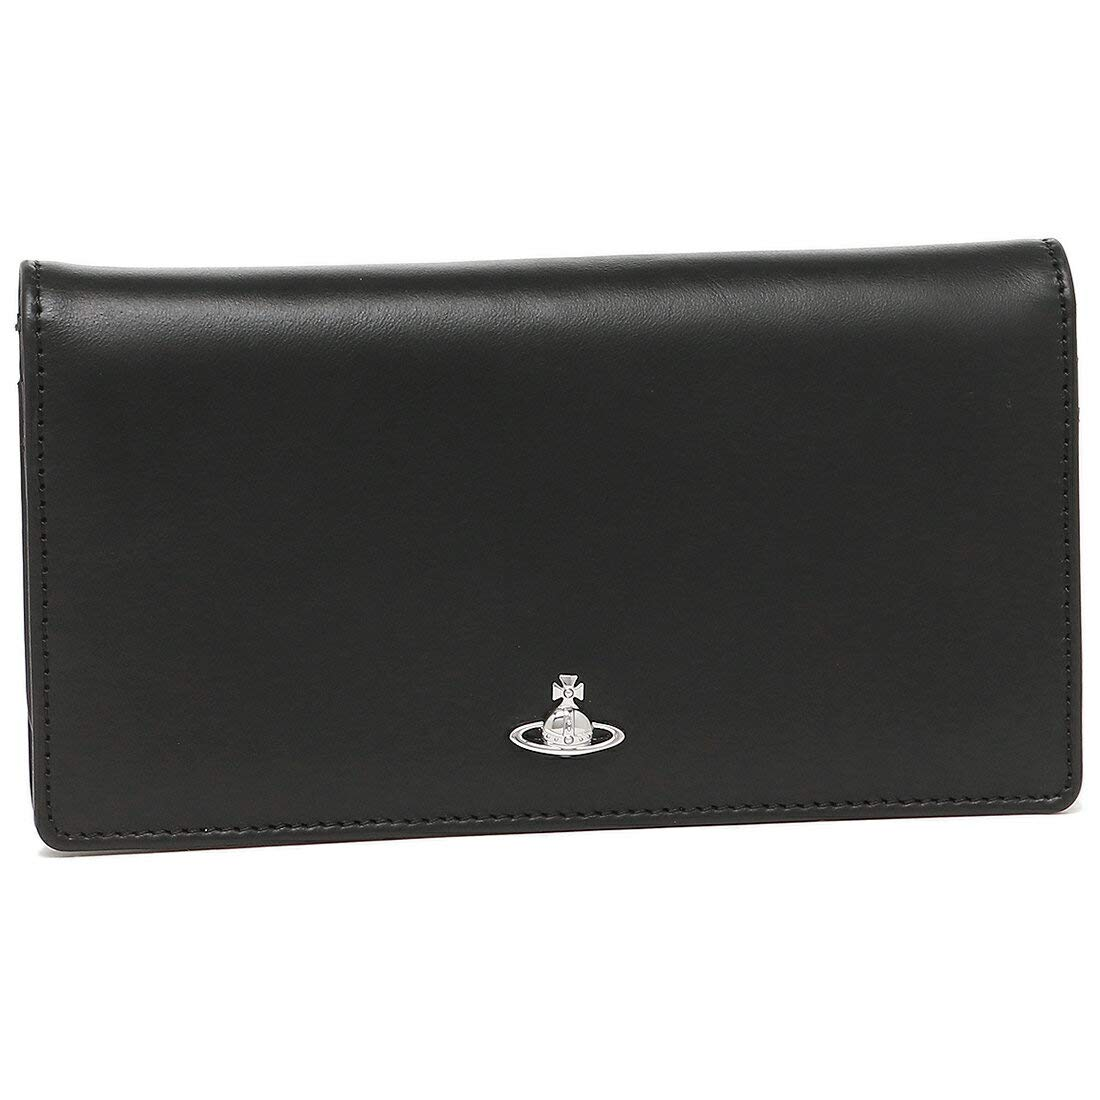 Lydianzishangwu Mens Wallet Leather Fashion Multi-Function Leather Business Clutch Color : Black, Size : S